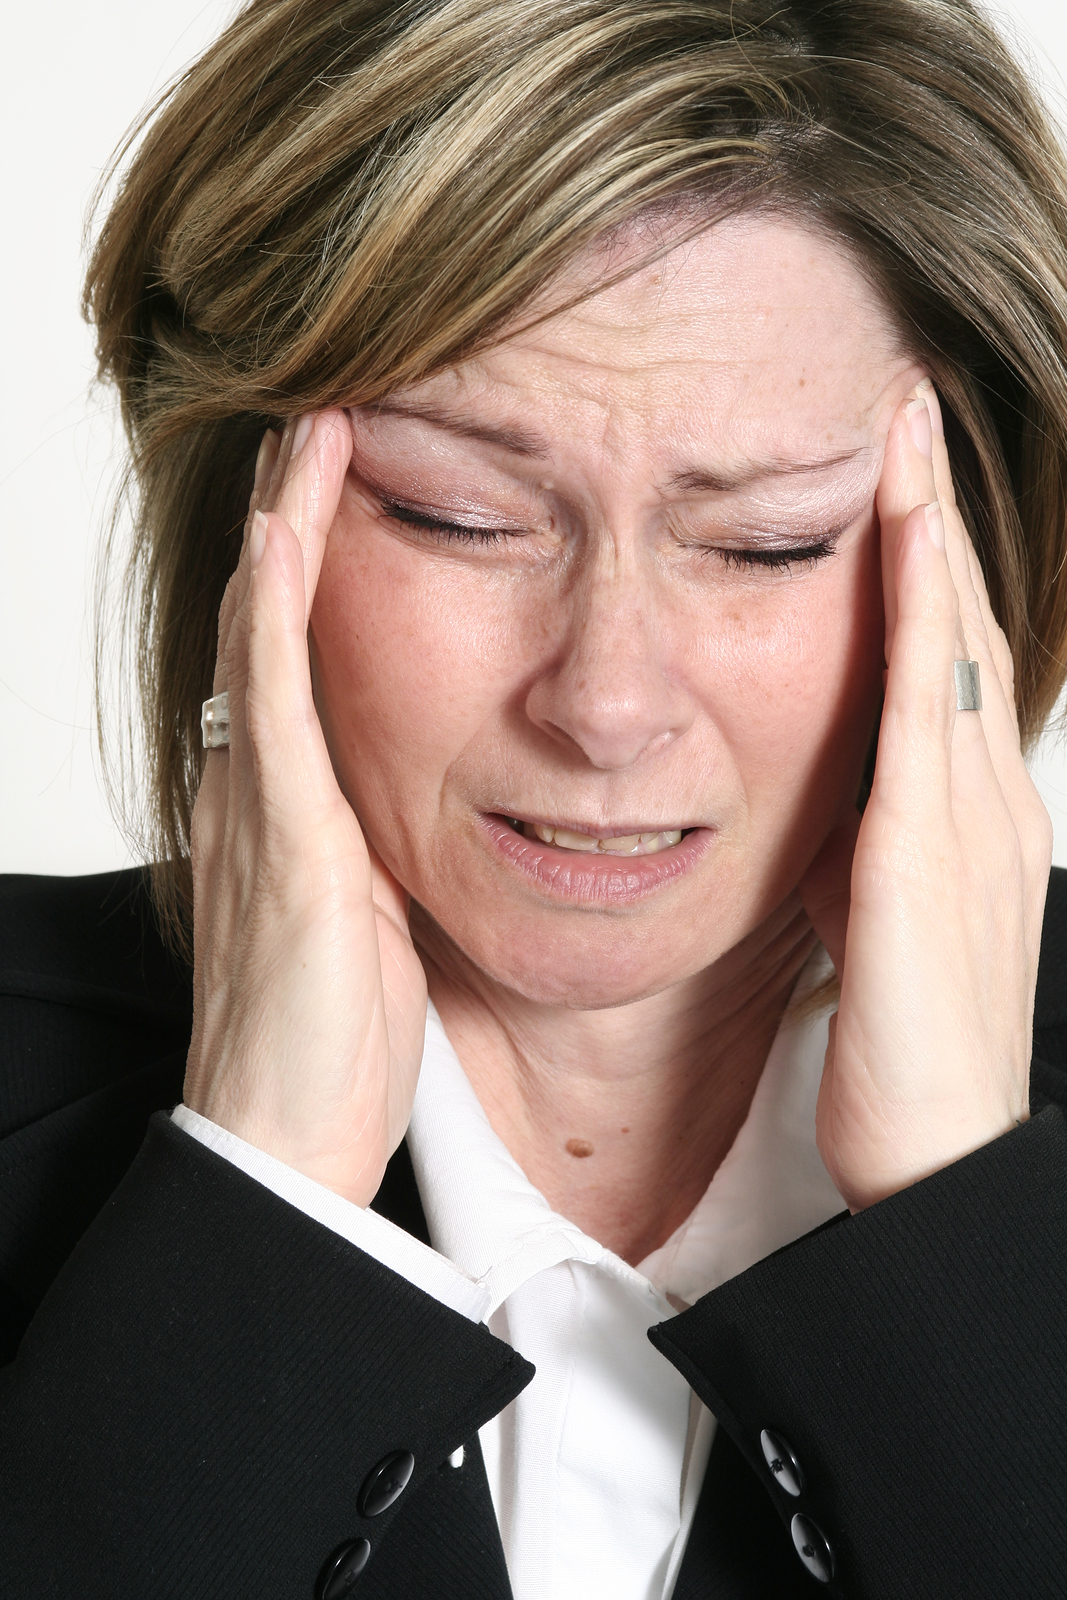 bigstockphoto_Migraine_Close_Up_395813.jpg